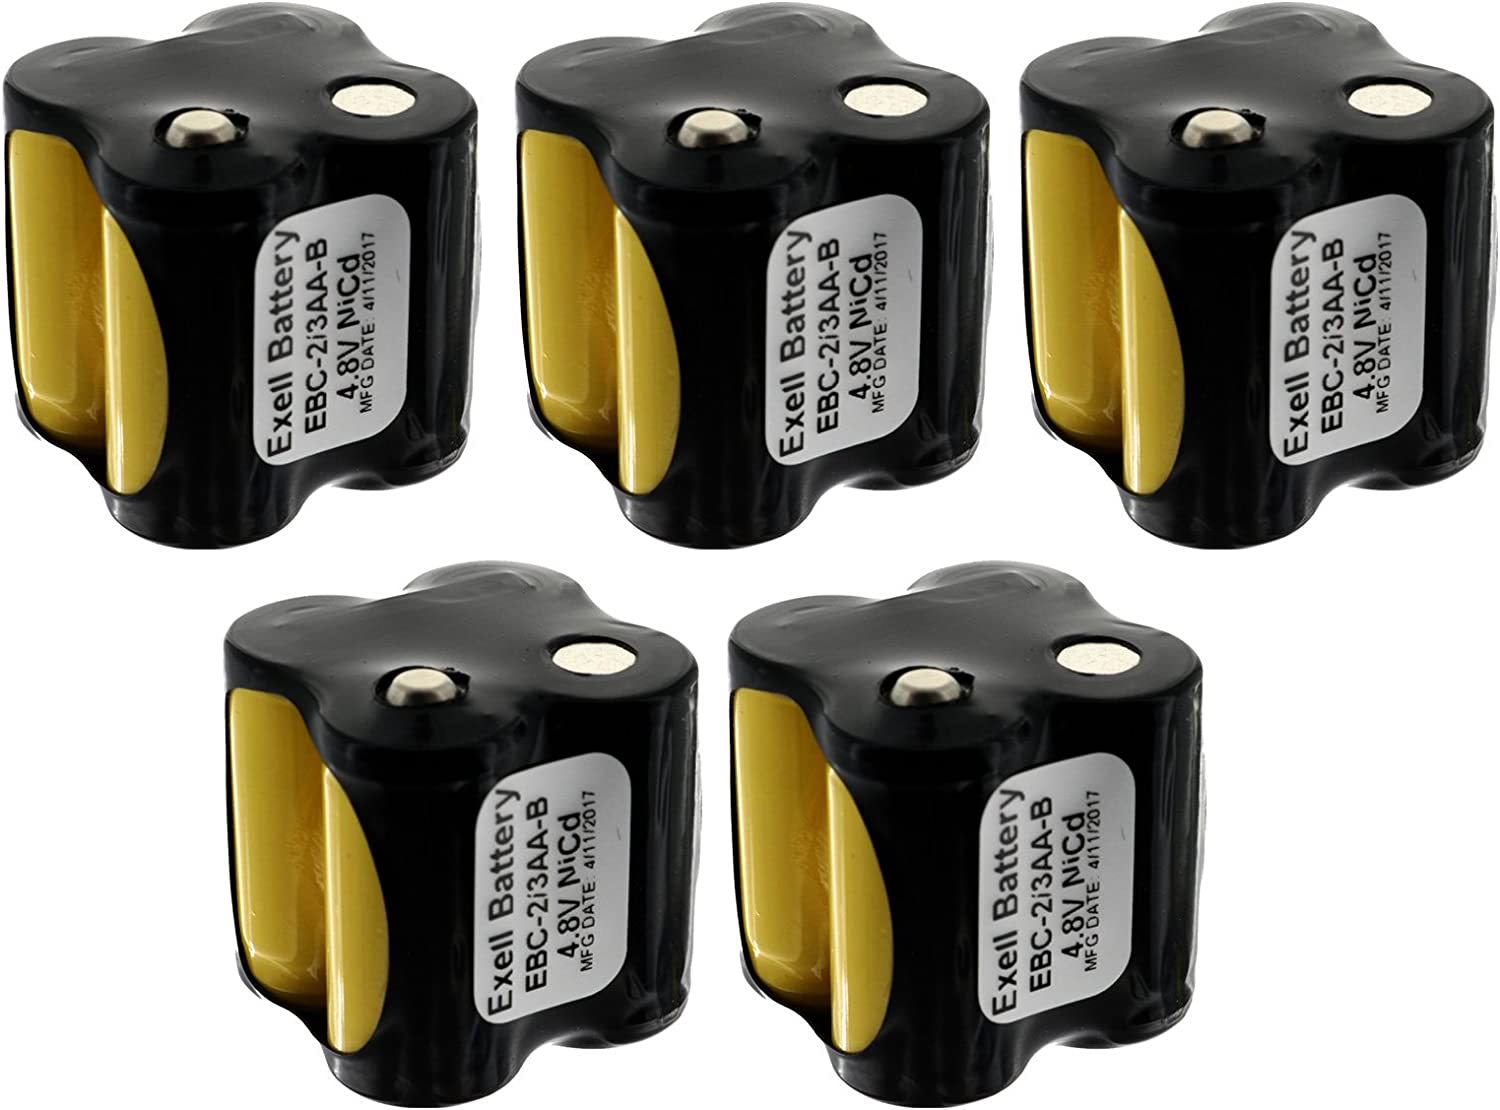 5x Exell Custom 4.8V 400 mAh 4x2//3AA Square Battery Pack with Button Top